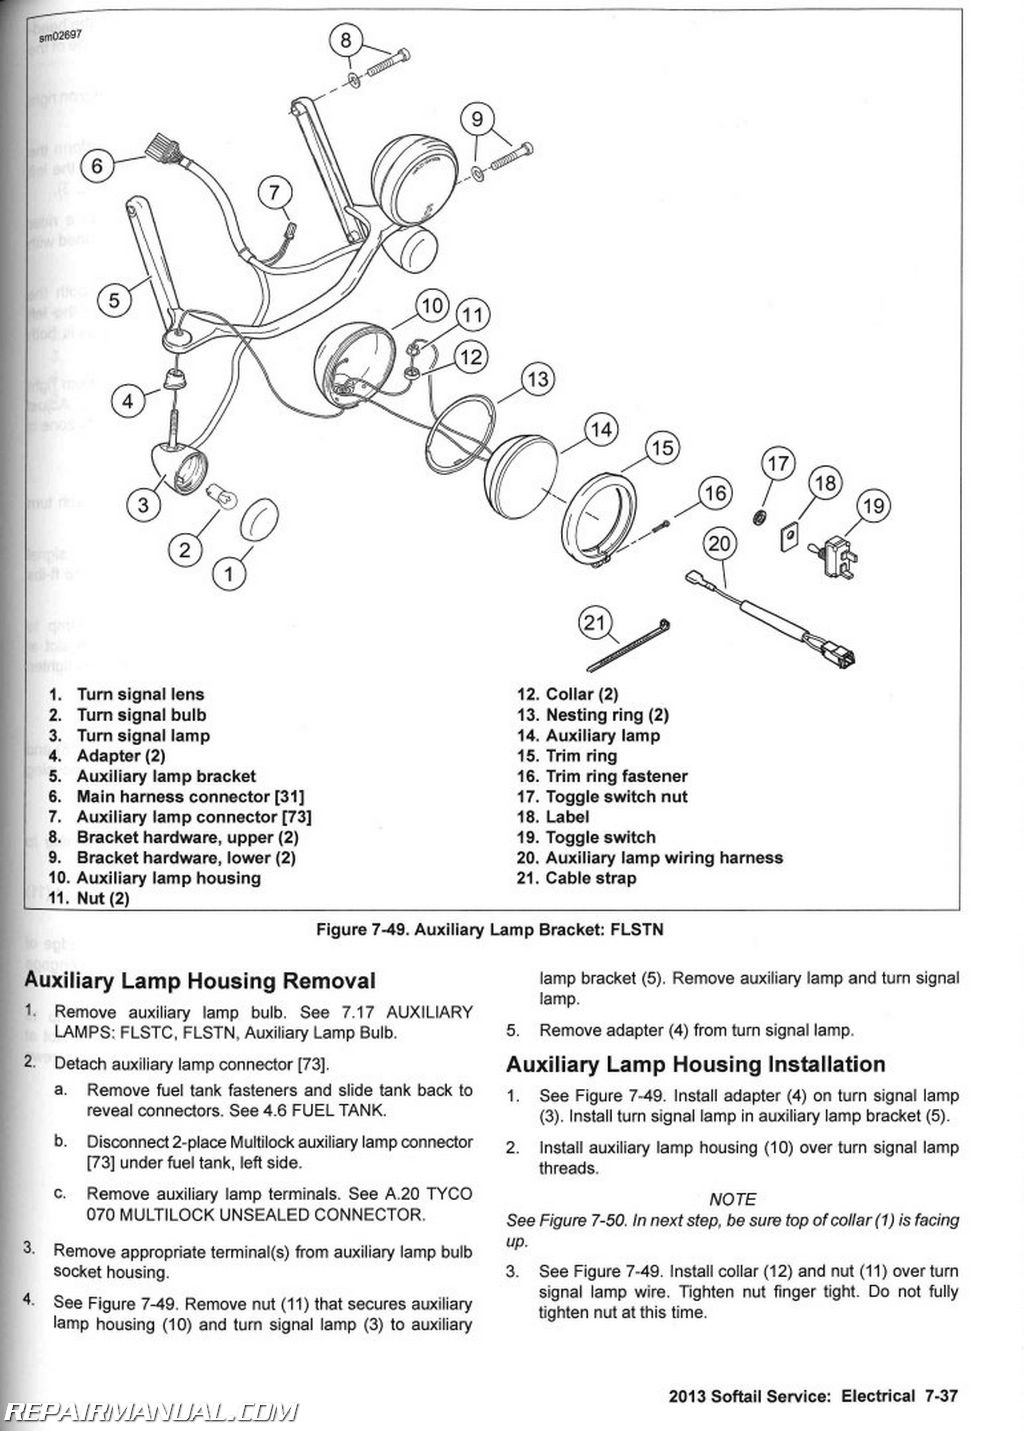 2013 Harley Davidson Softail Motorcycle Service Manual Plug Wires